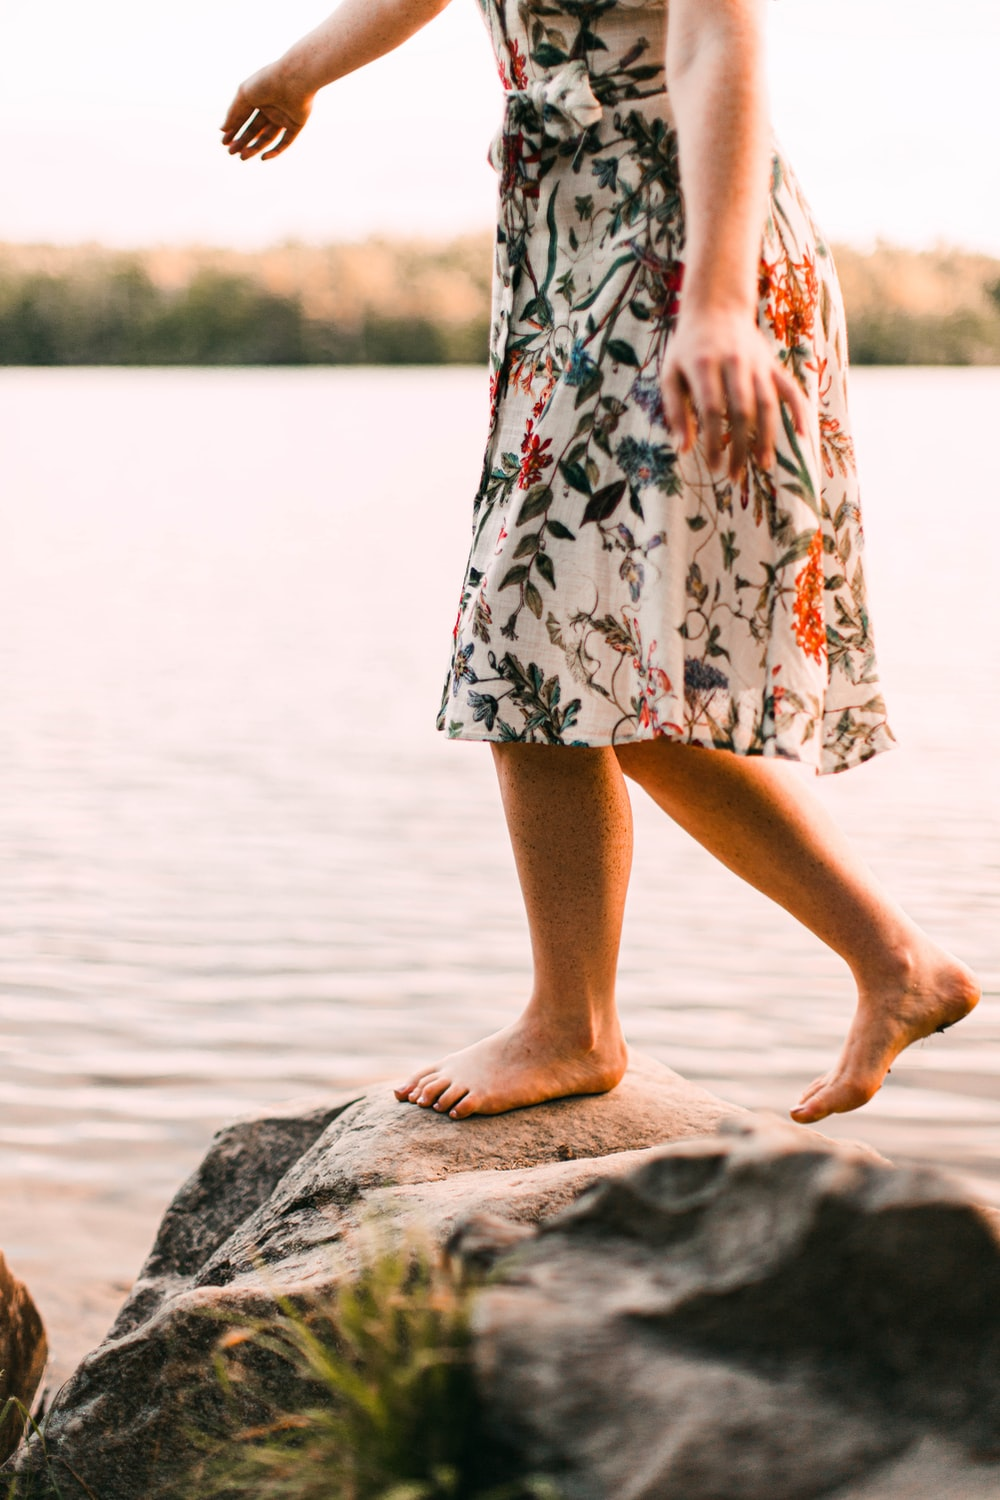 woman in white red and black floral dress standing on gray rock near body of water